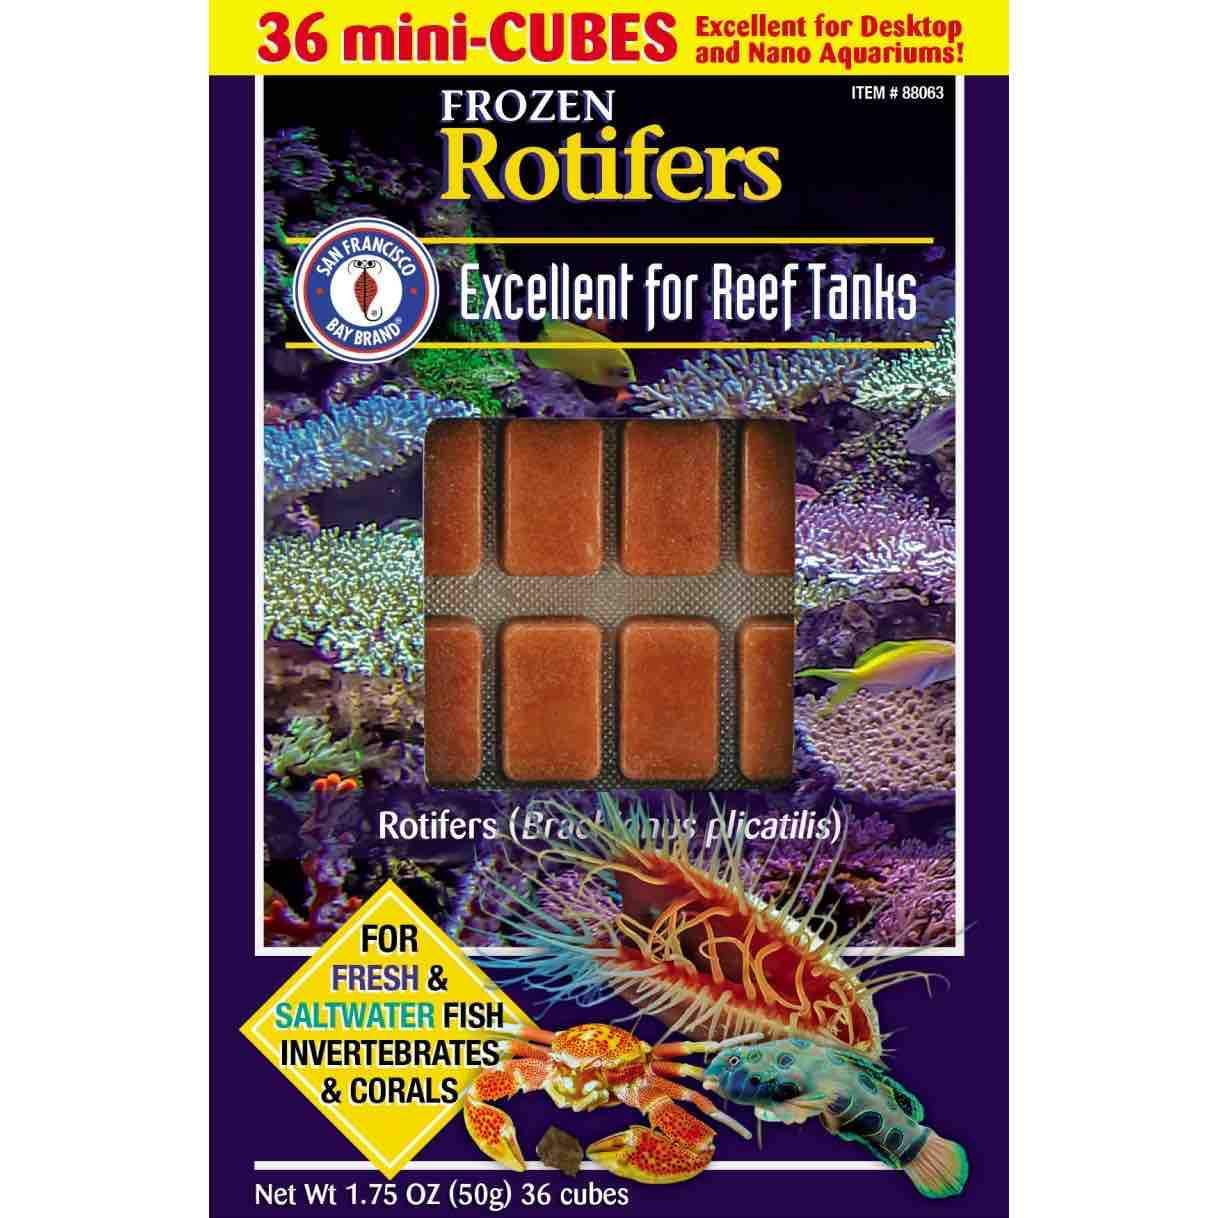 Frozen Aquarium Food Frozen Rotifers - San Francisco Bay Brand